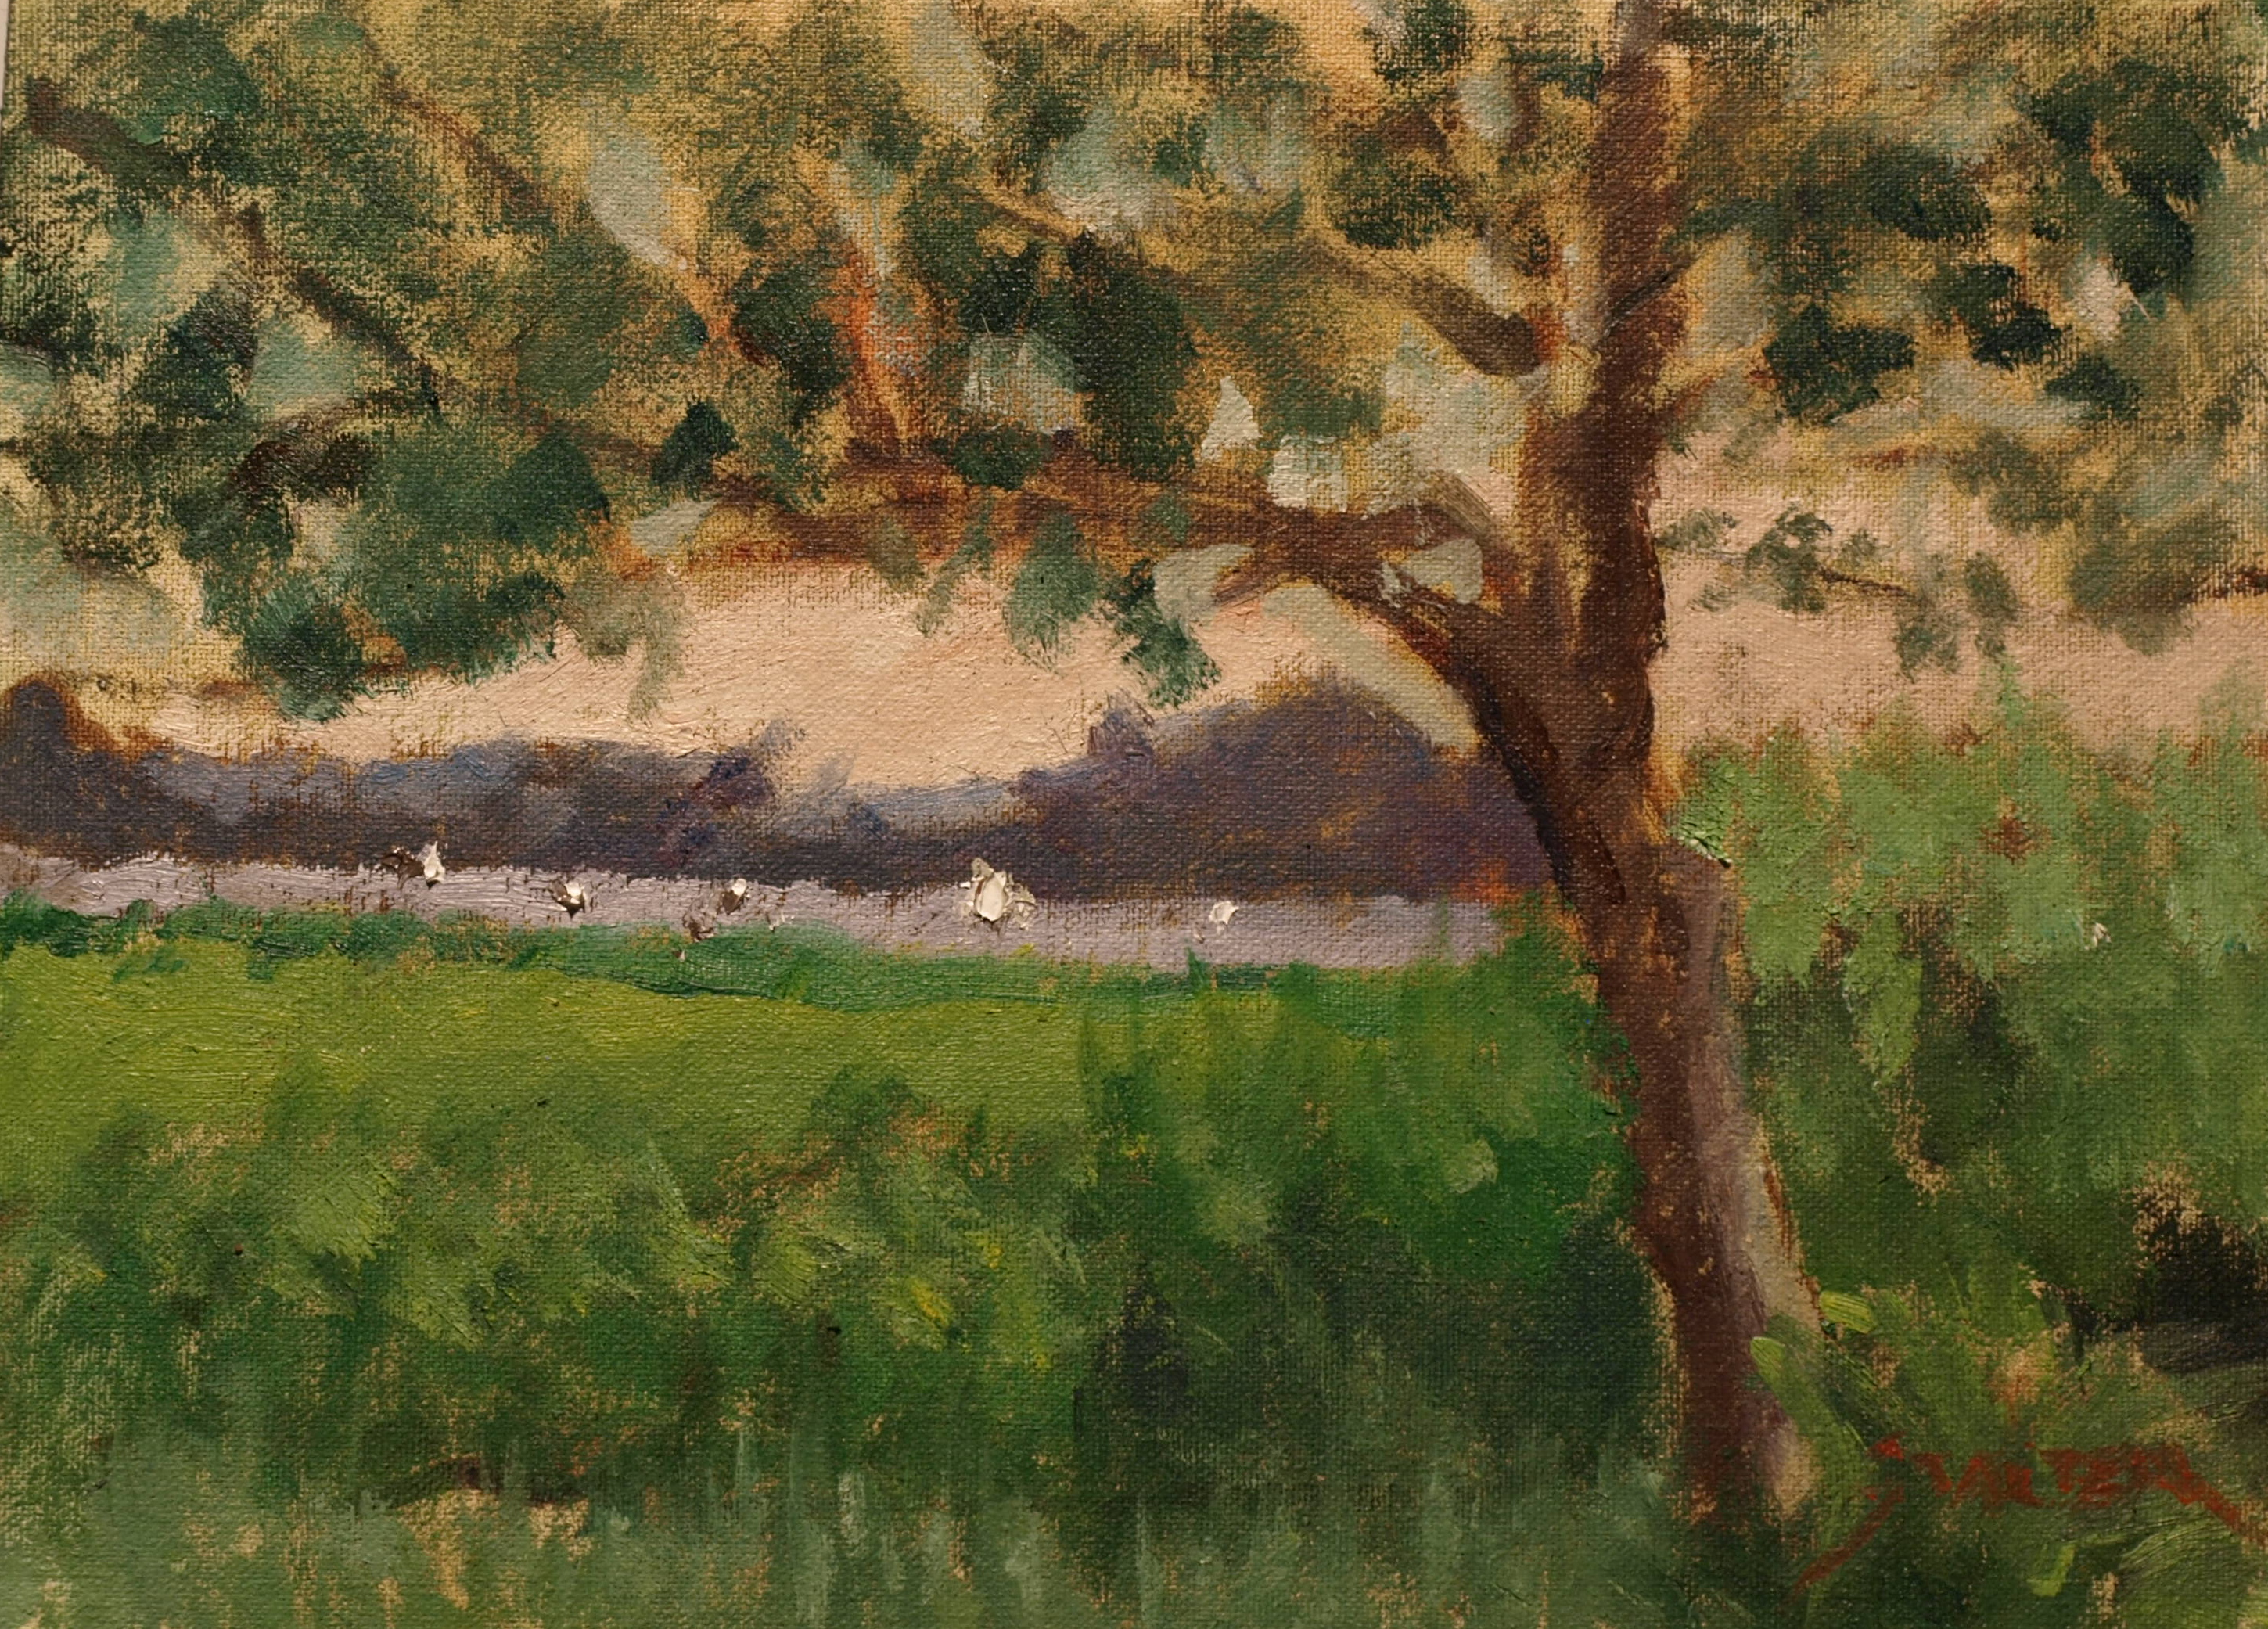 Mason's Island, Oil on Canvas on Panel, 9 x 12 Inches, by Richard Stalter, $220